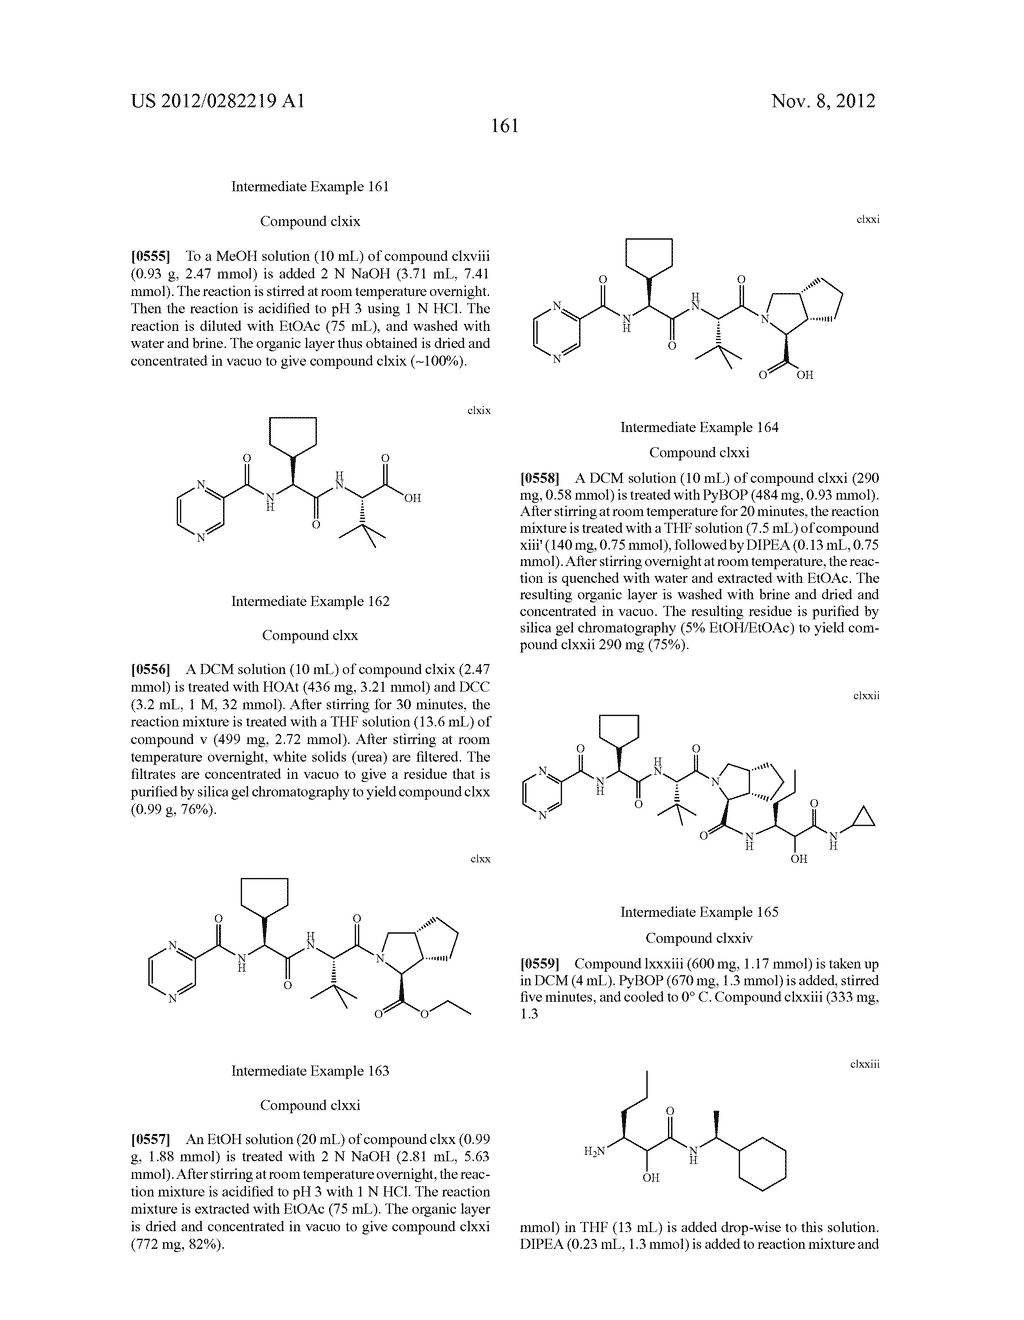 PEPTIDOMIMETIC PROTEASE INHIBITORS - diagram, schematic, and image 176